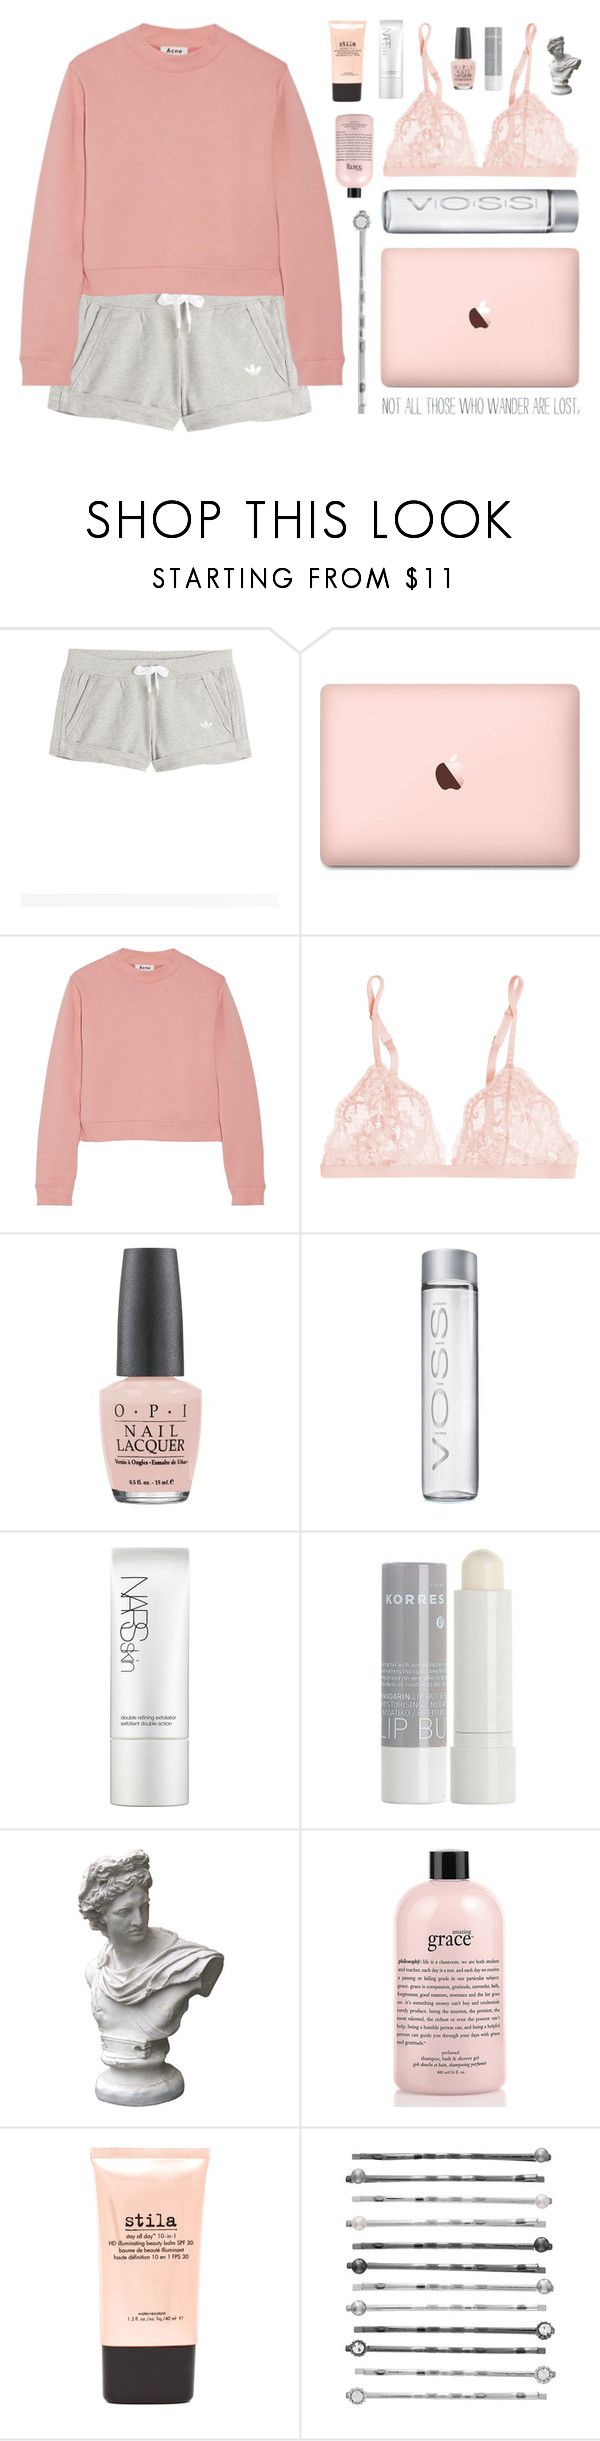 """""""//Sunday morning rain is falling//"""" by the-key-to-my-heart ❤ liked on Polyvore featuring adidas Originals, Acne Studios, La Perla, OPI, NARS Cosmetics, Korres, Market, philosophy, Stila and LC Lauren Conrad"""